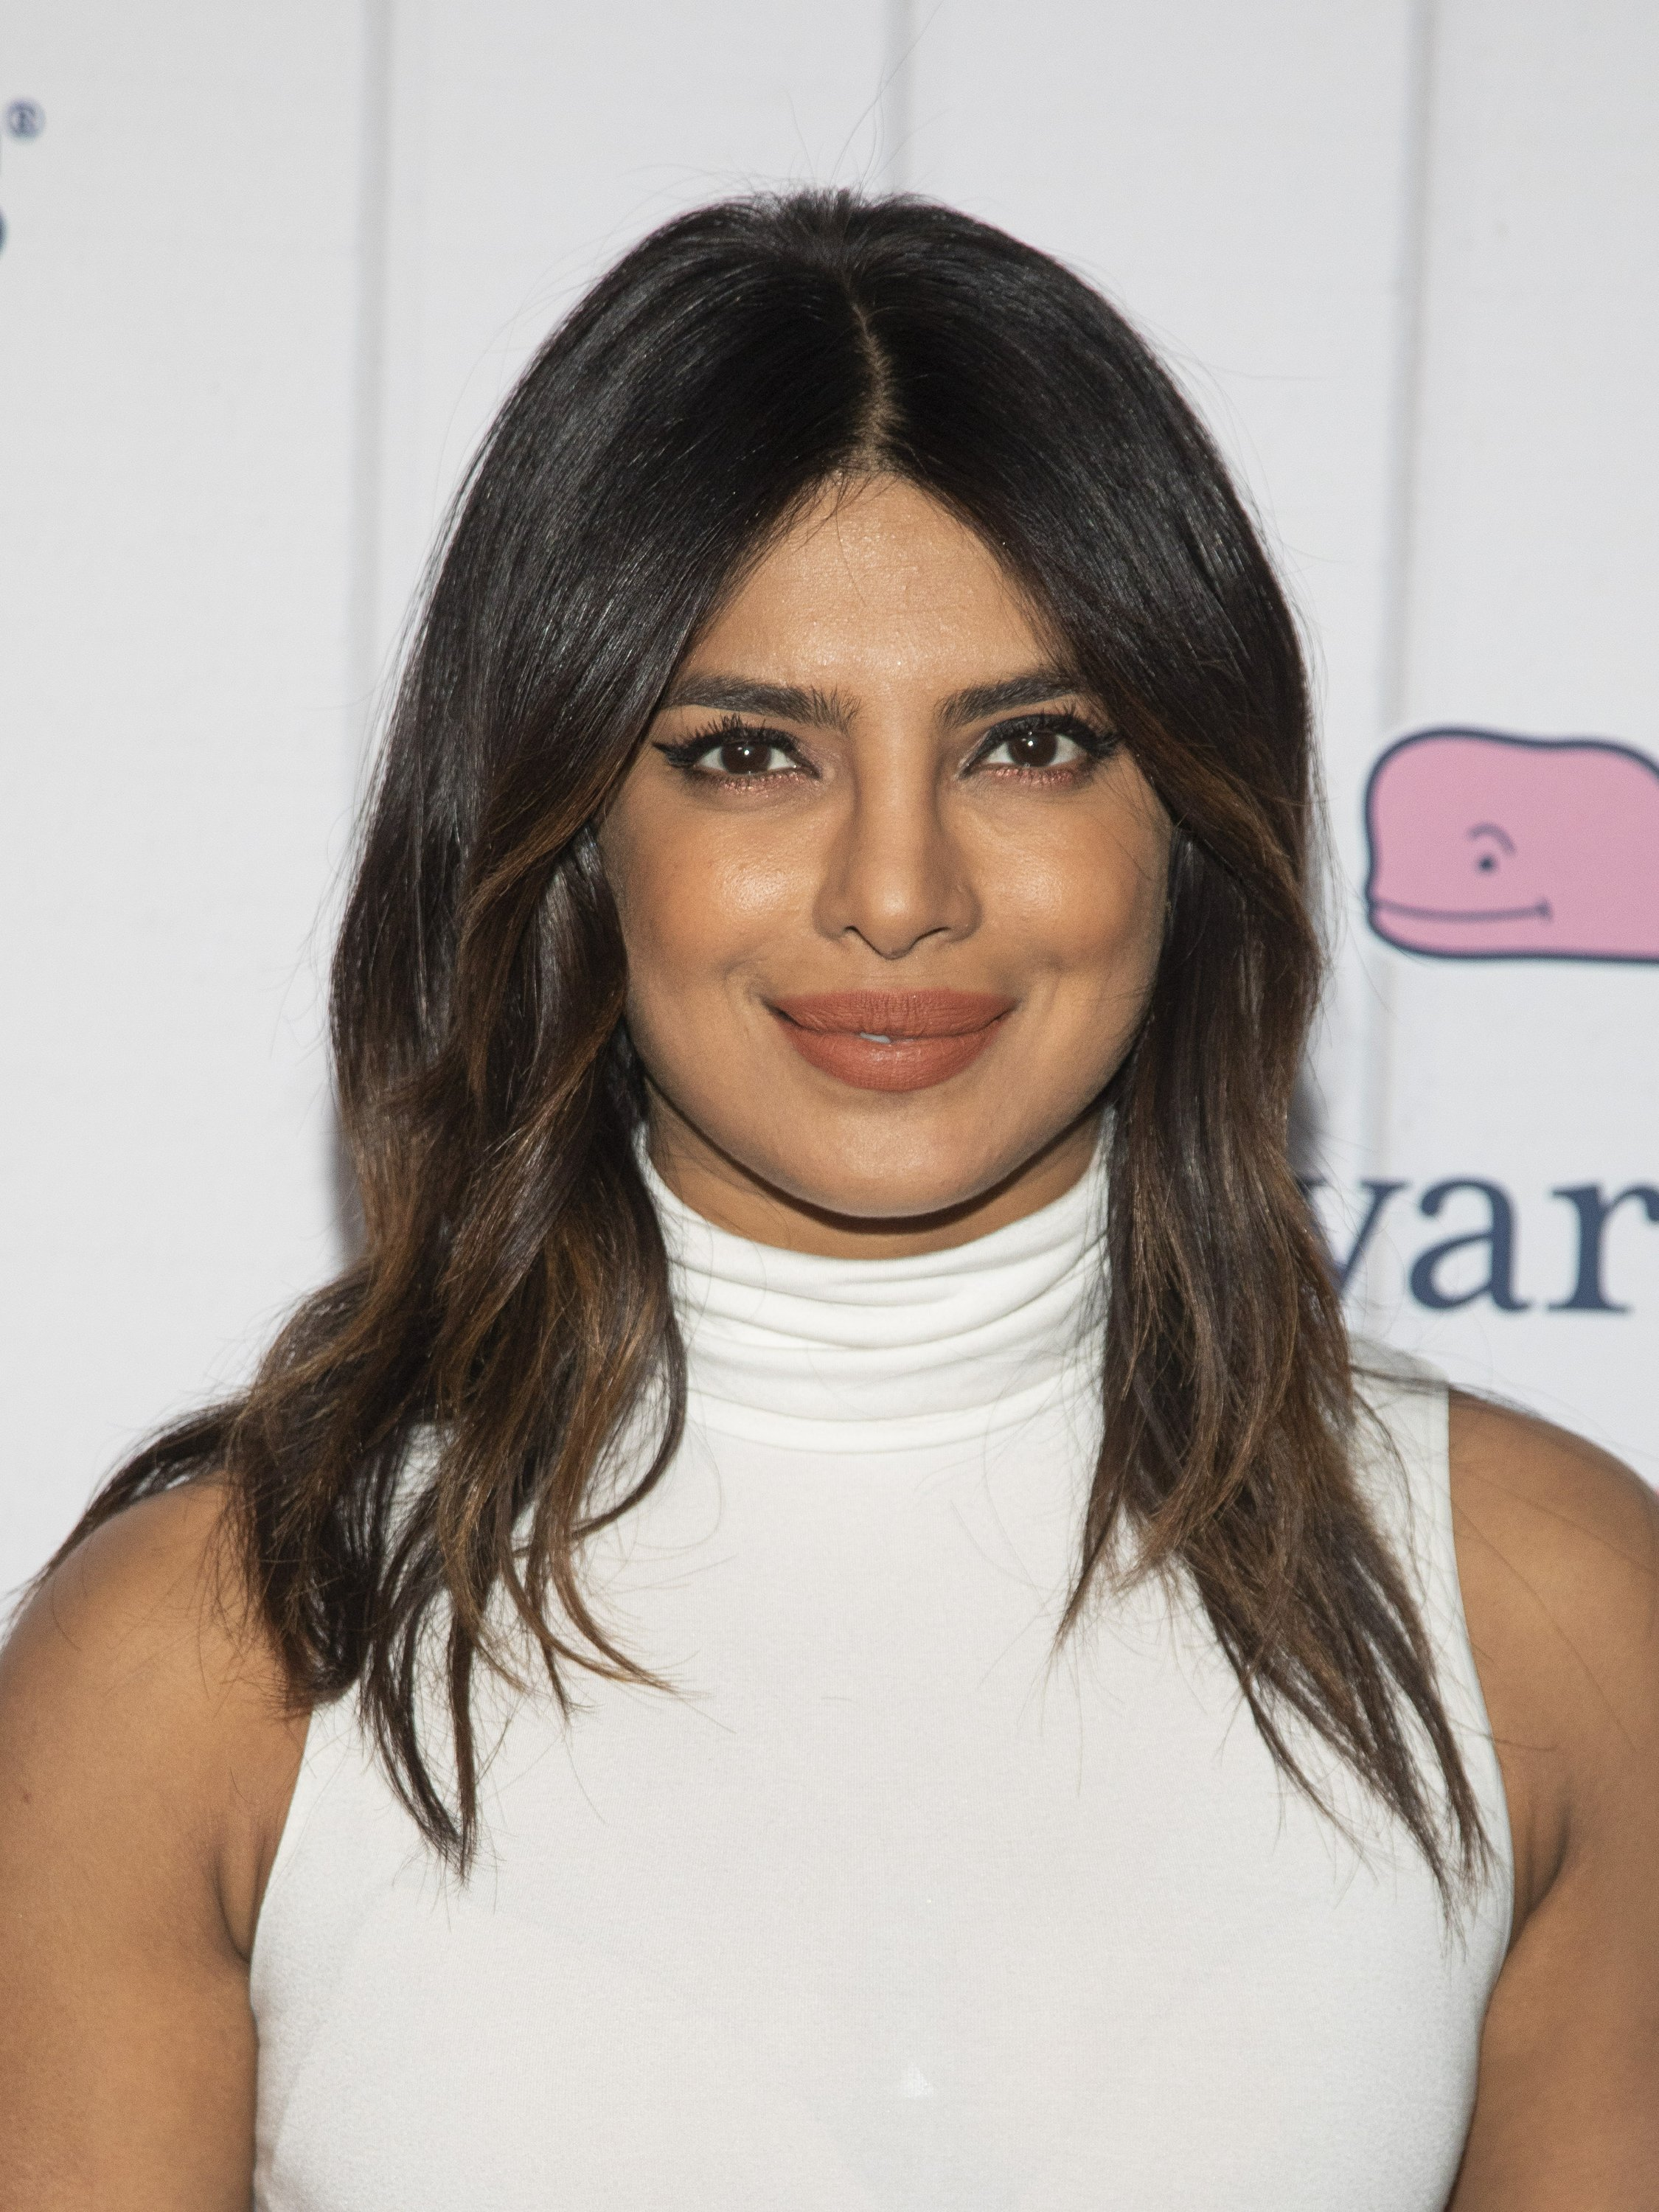 Game Of Thrones Is A Family Affair For Priyanka Chopra